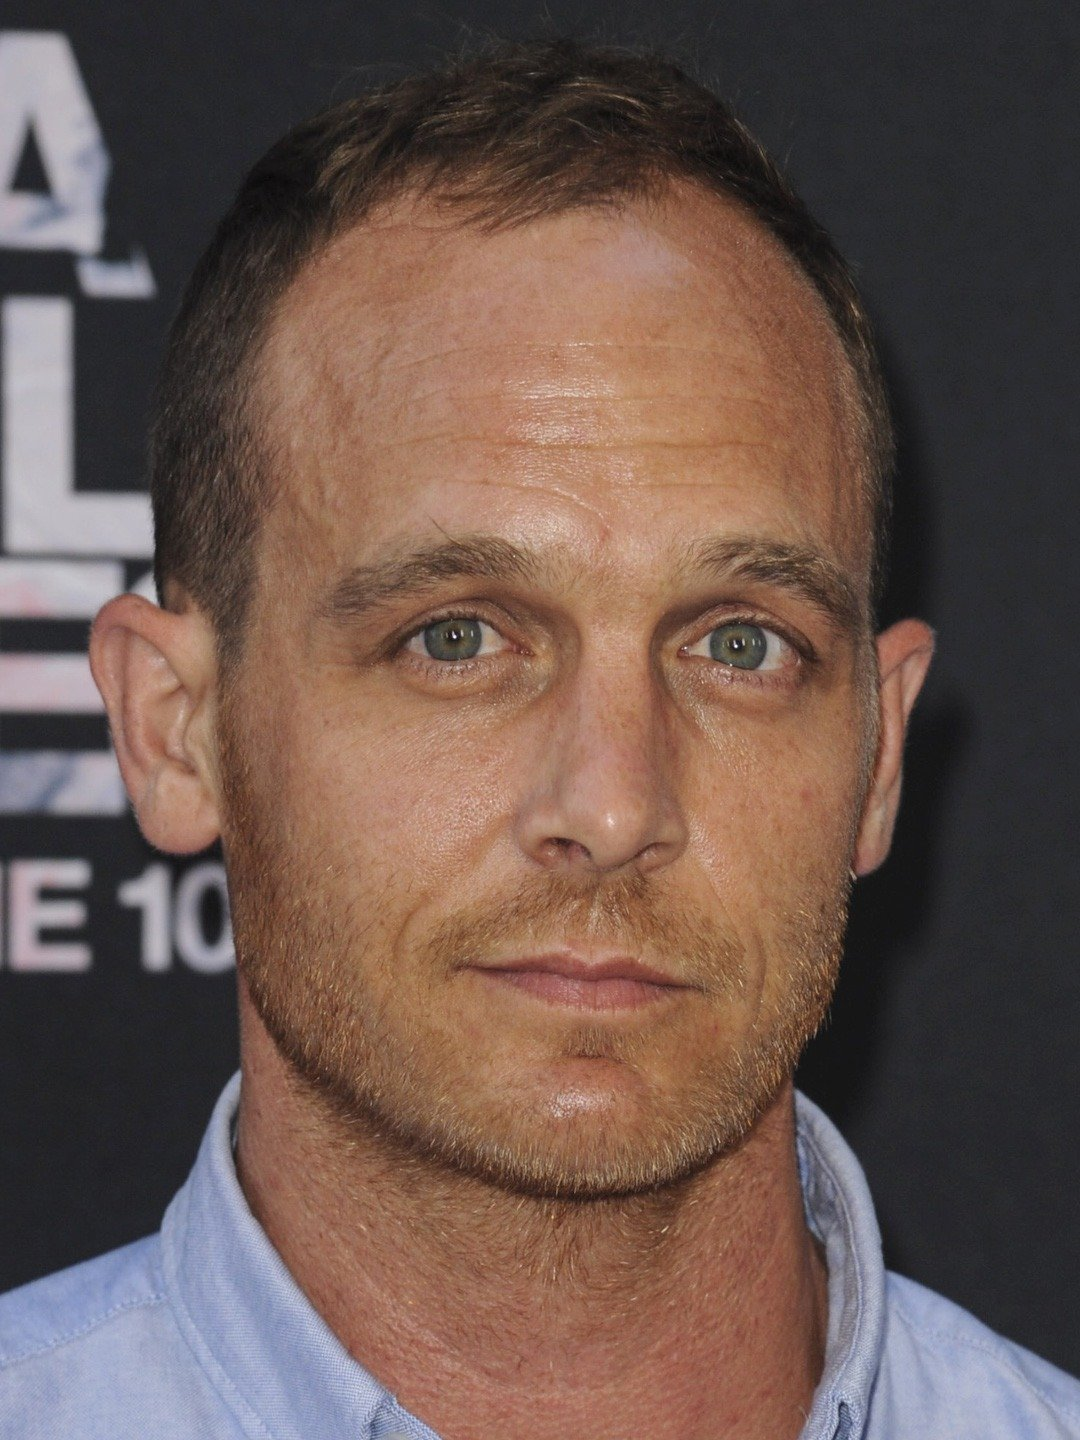 Ethan Embry Beach: Ethan Embry Net Worth, Measurements, Height, Age, Weight